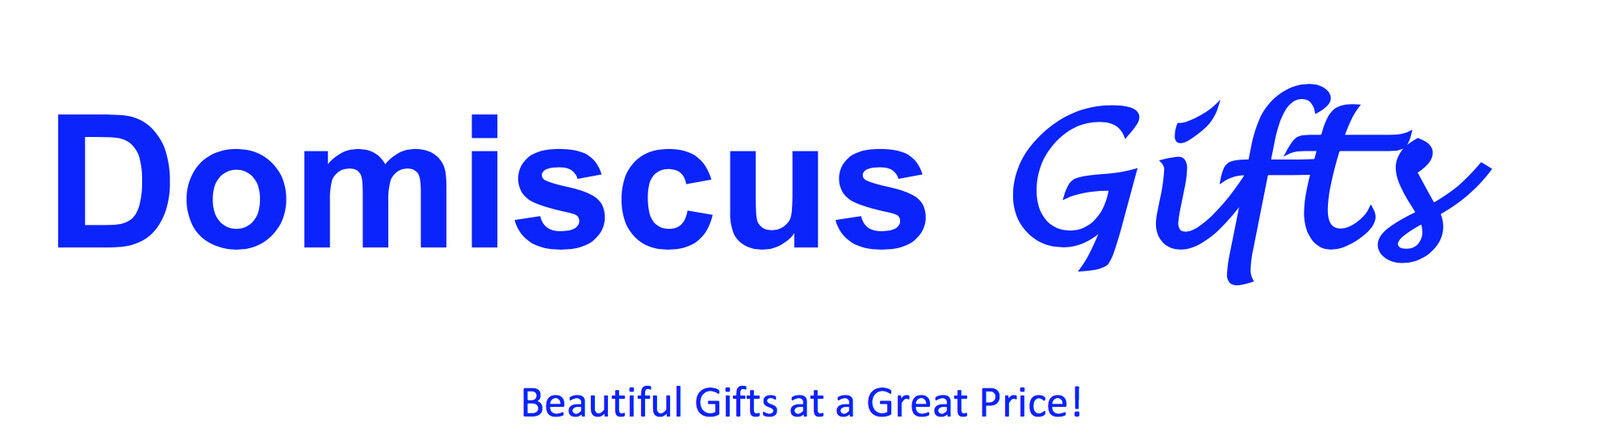 Domiscus Gifts